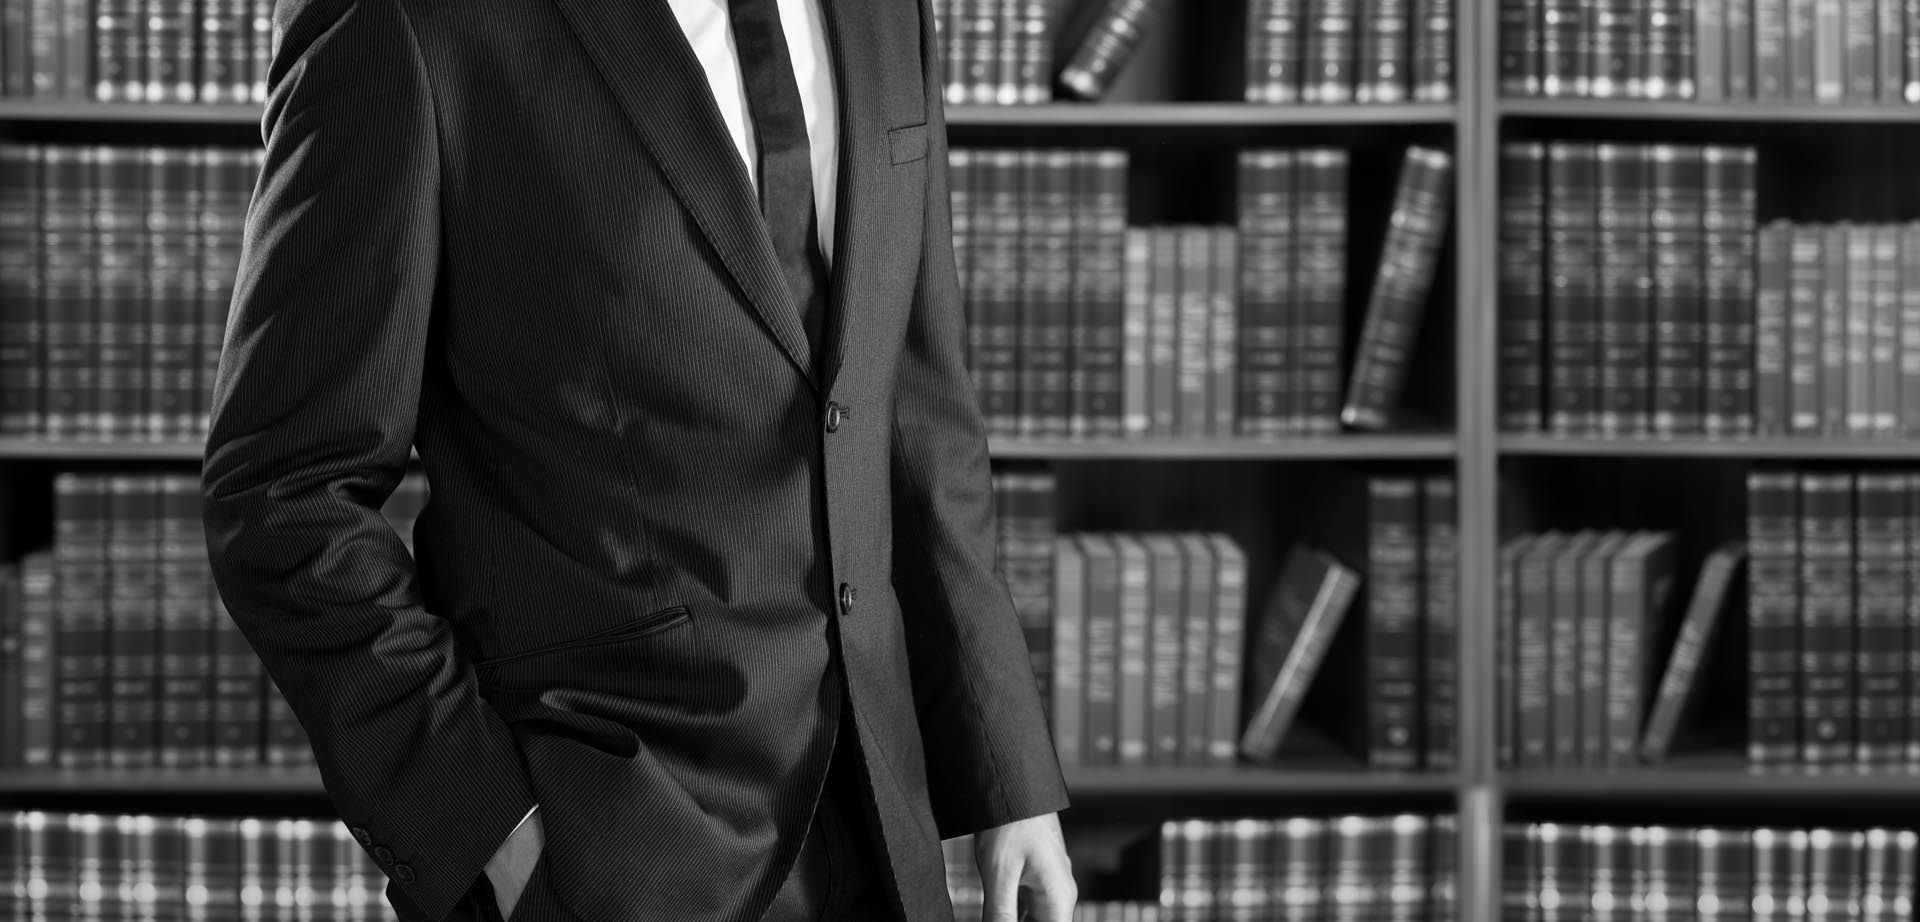 Central Coast Evictions Lawyer Services